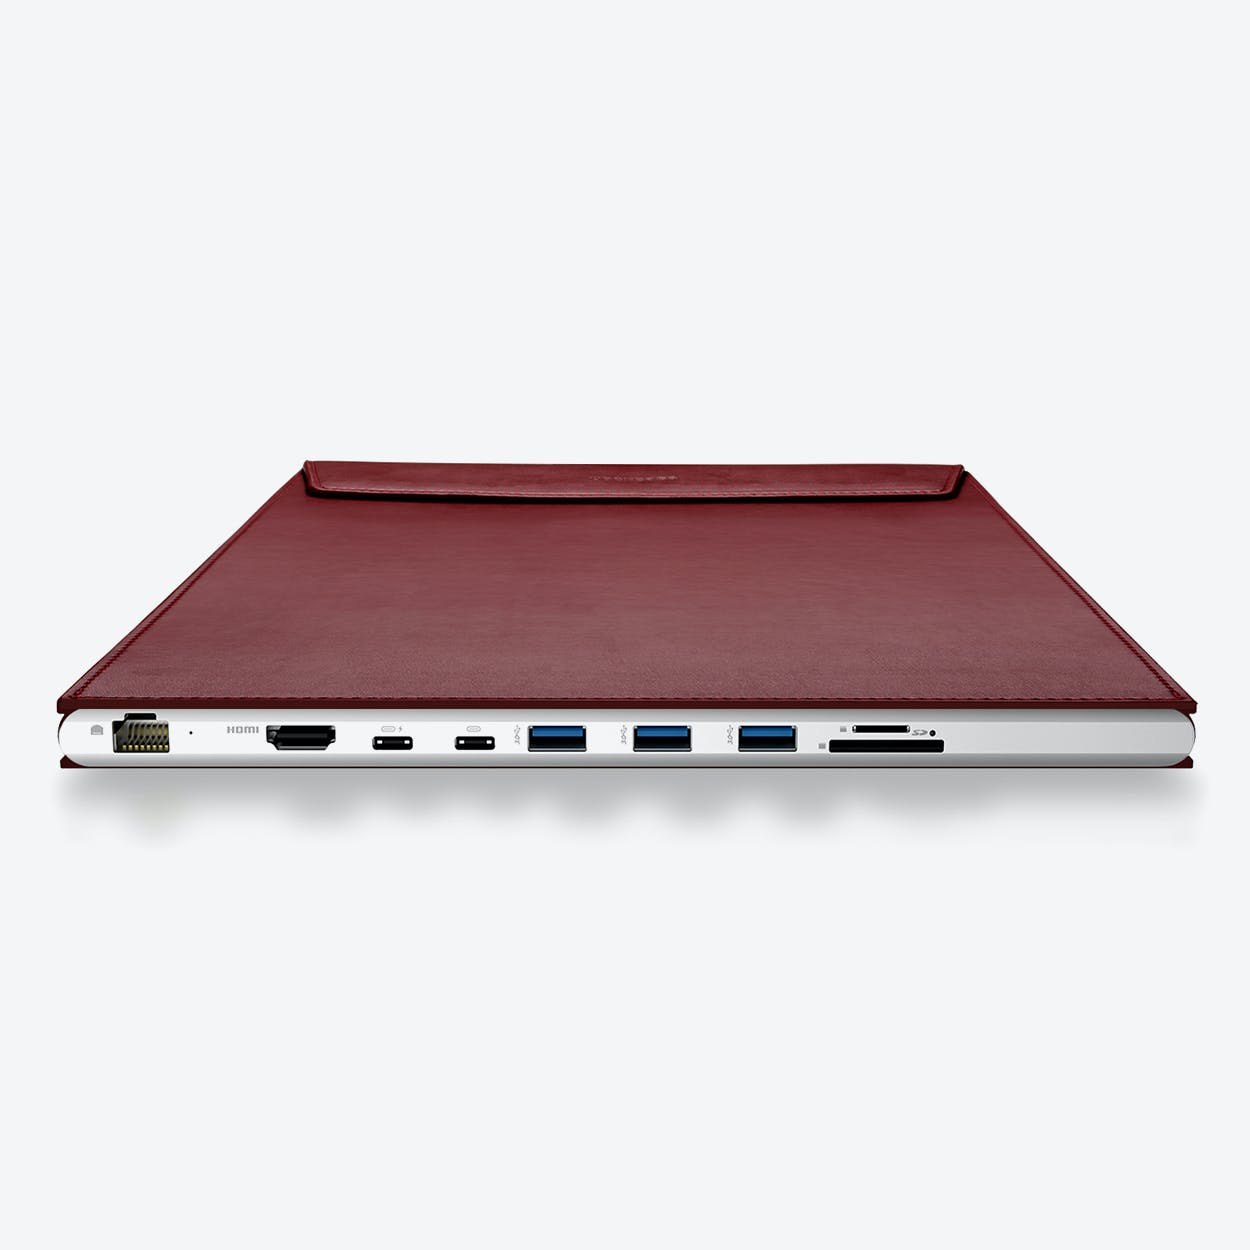 DockCase A1 Laptop Case for 15-in MacBook Pro - Burgundy Red